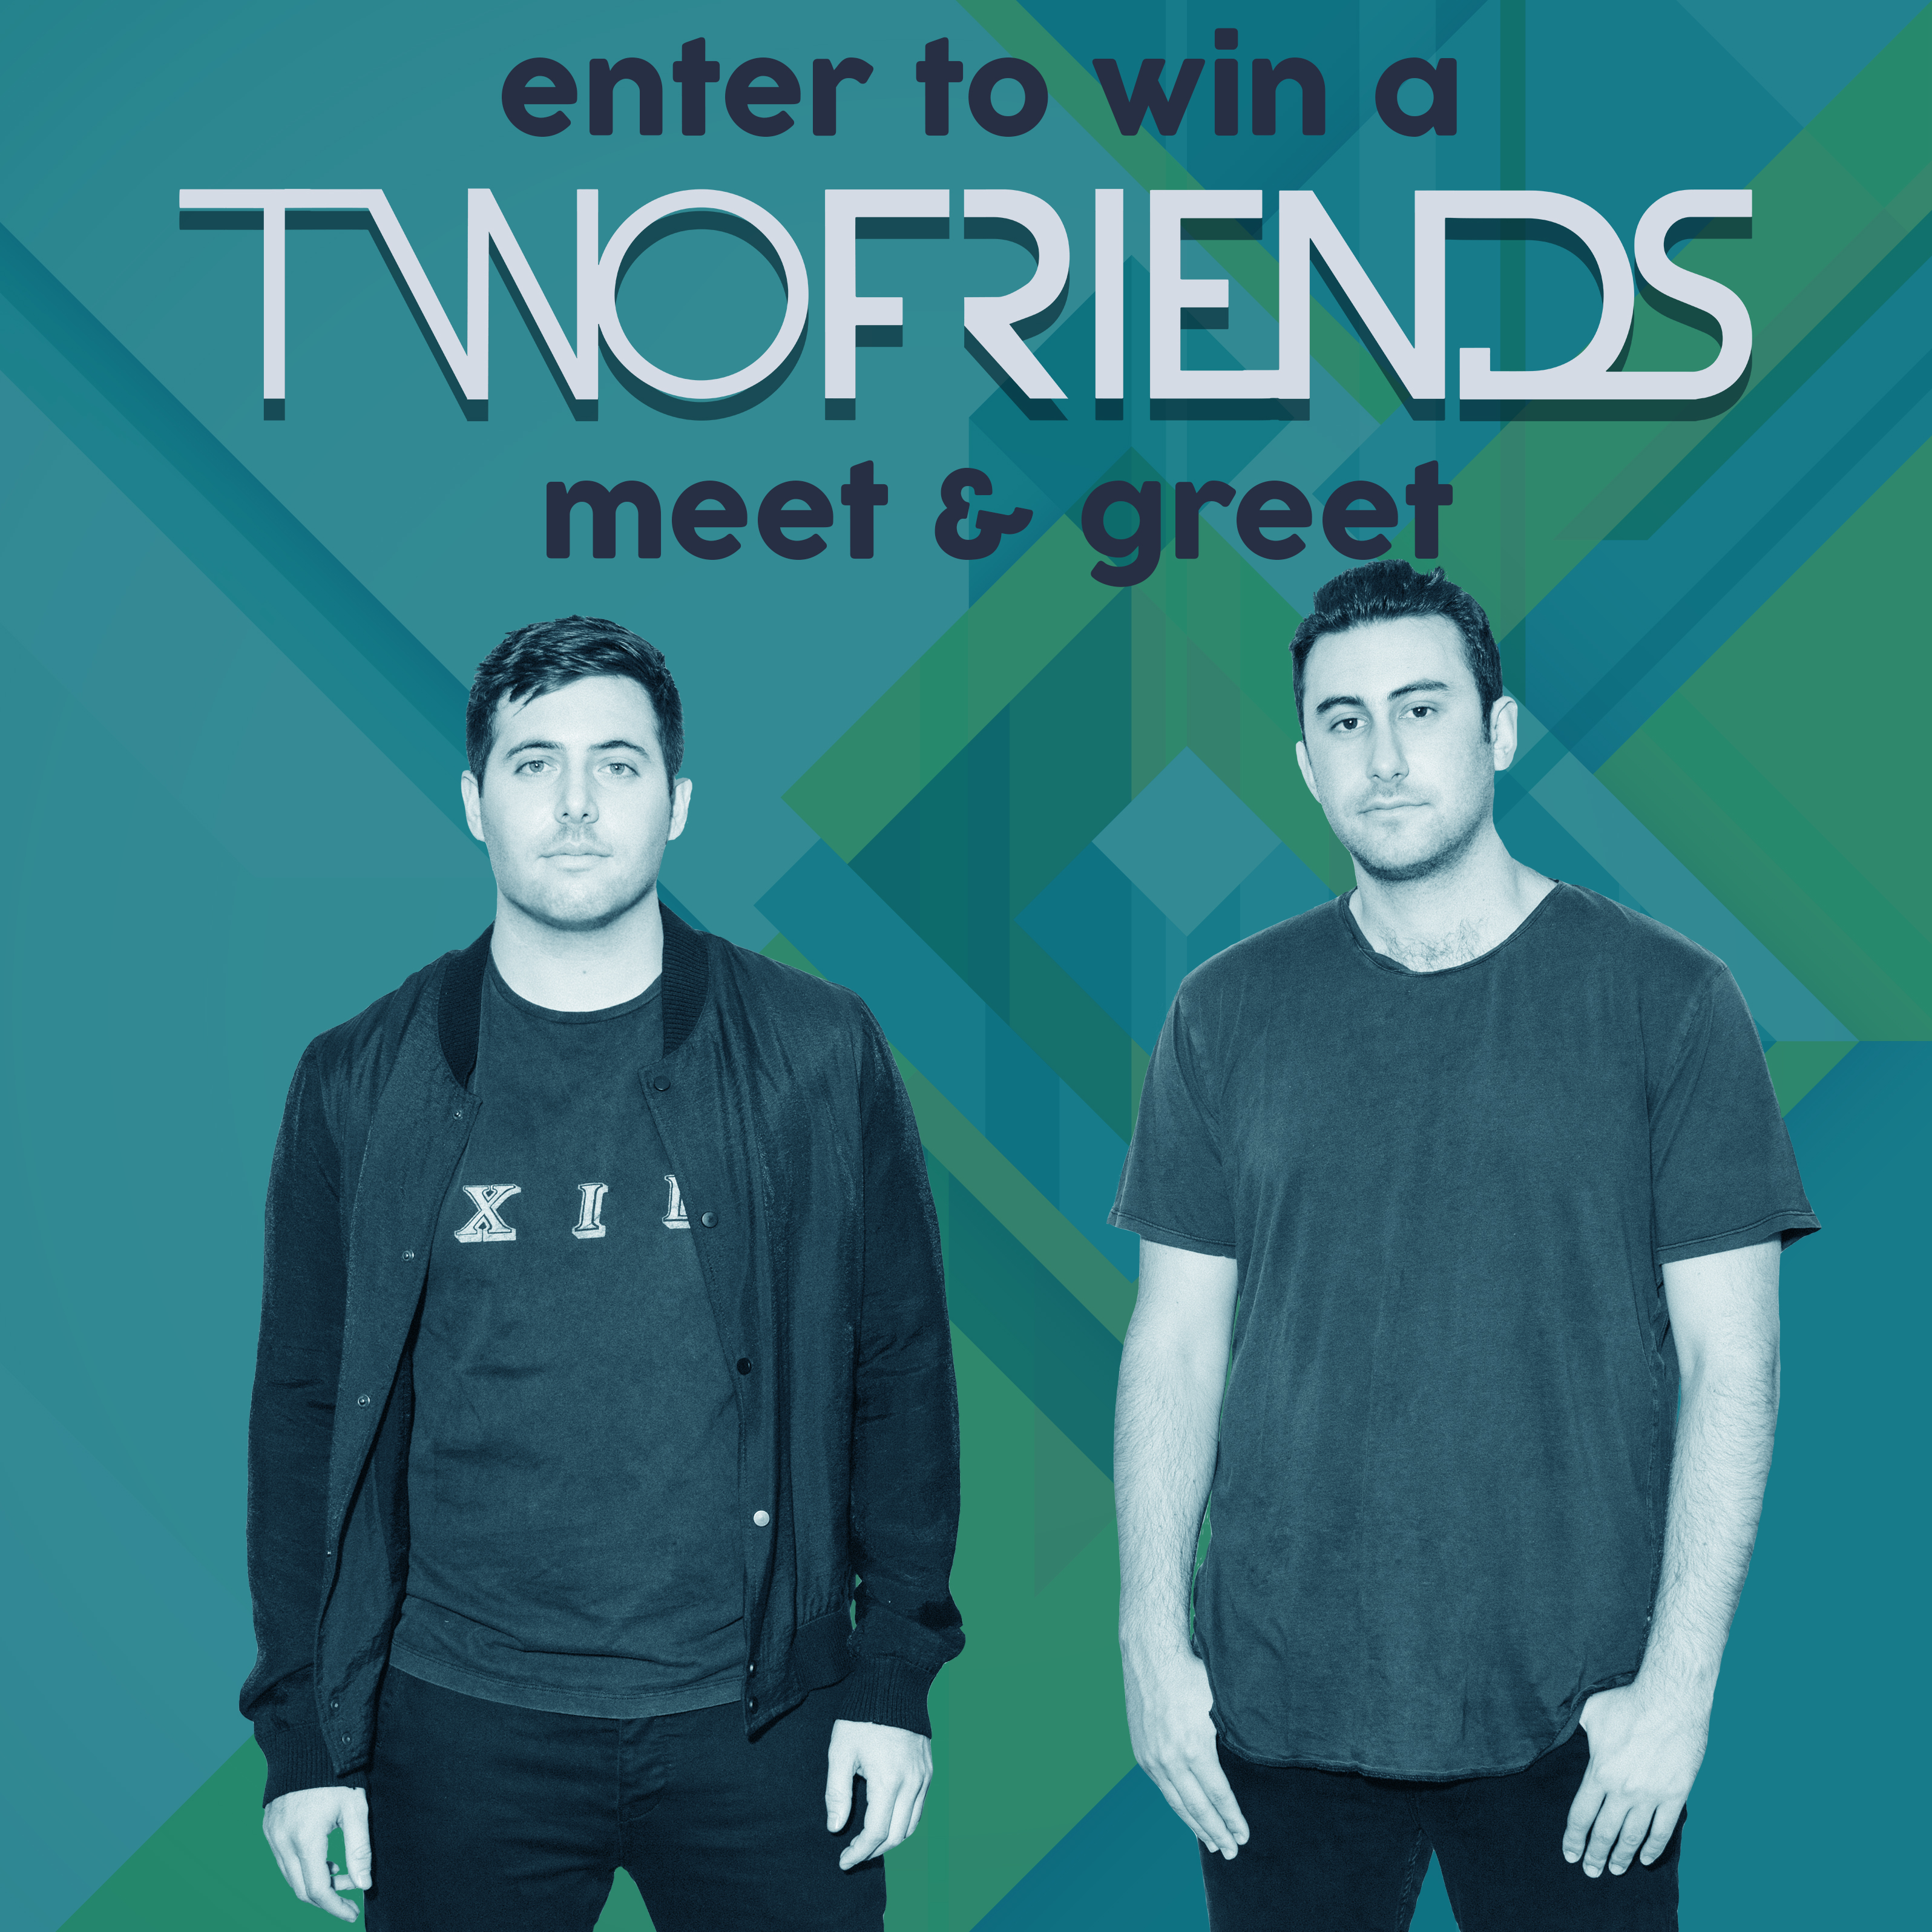 Two Friends Marquee Meet Greet Contest Enter To Win On Toneden